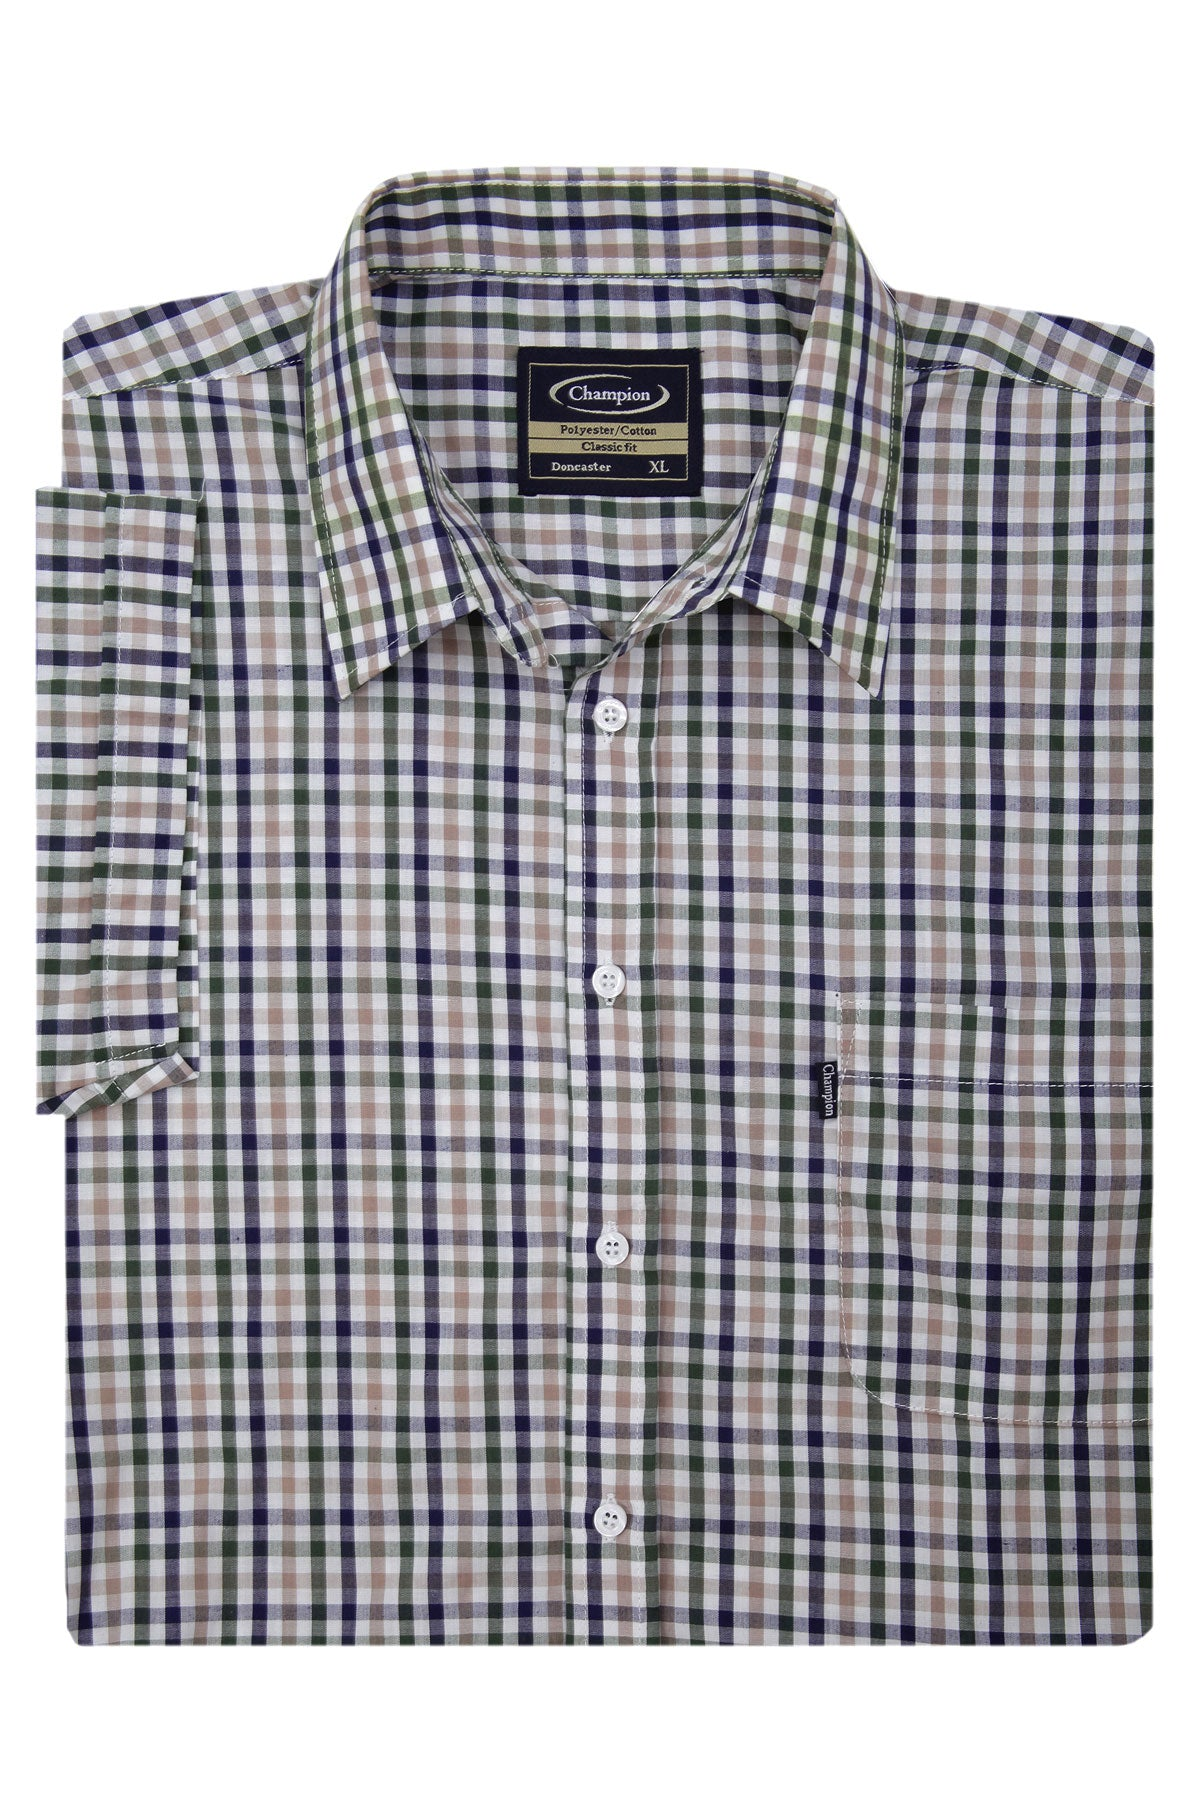 Champion Doncaster Short Sleeved Shirt showing sleeves